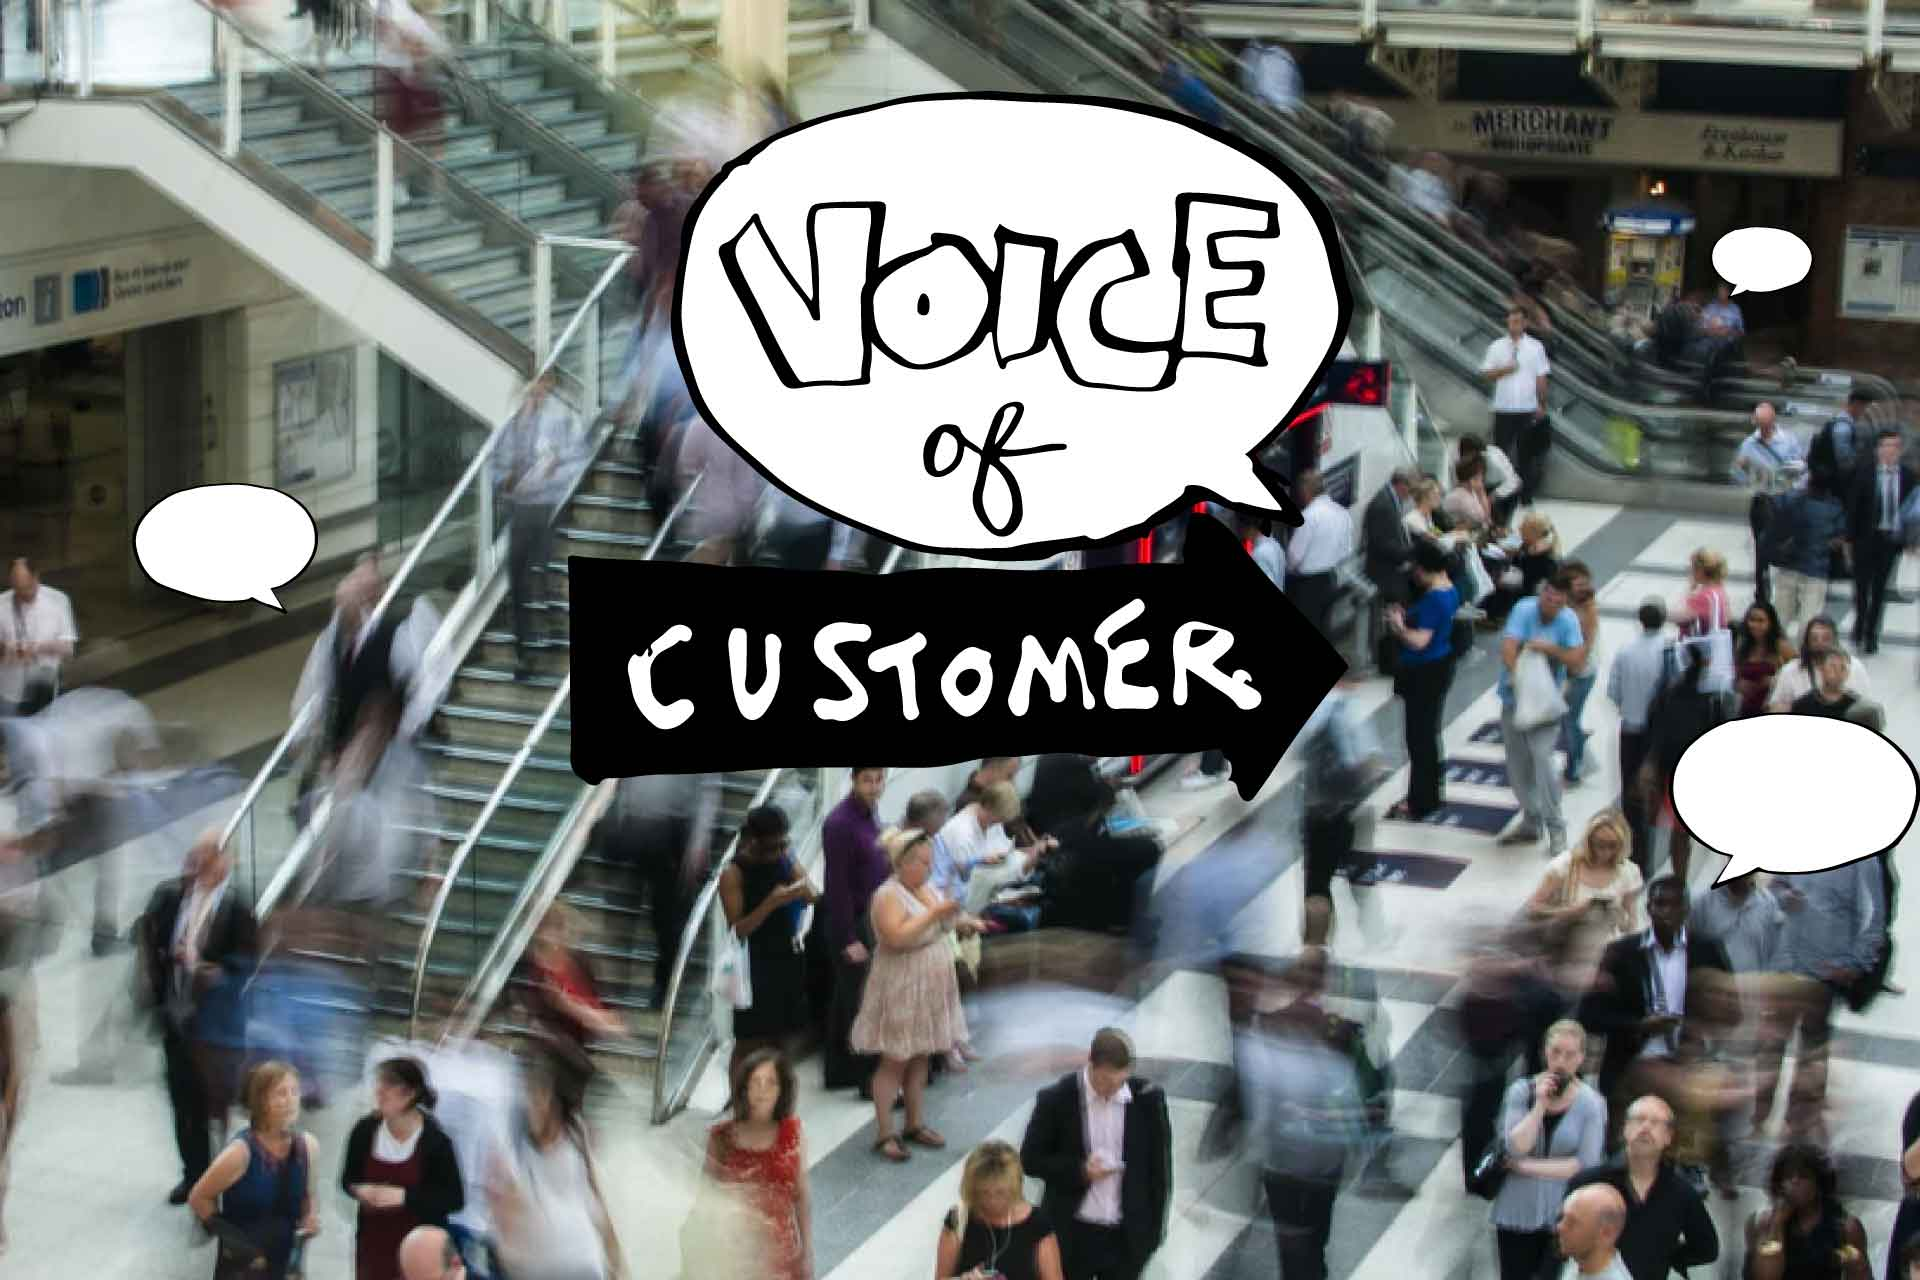 A Positive Voice (of Customer)?